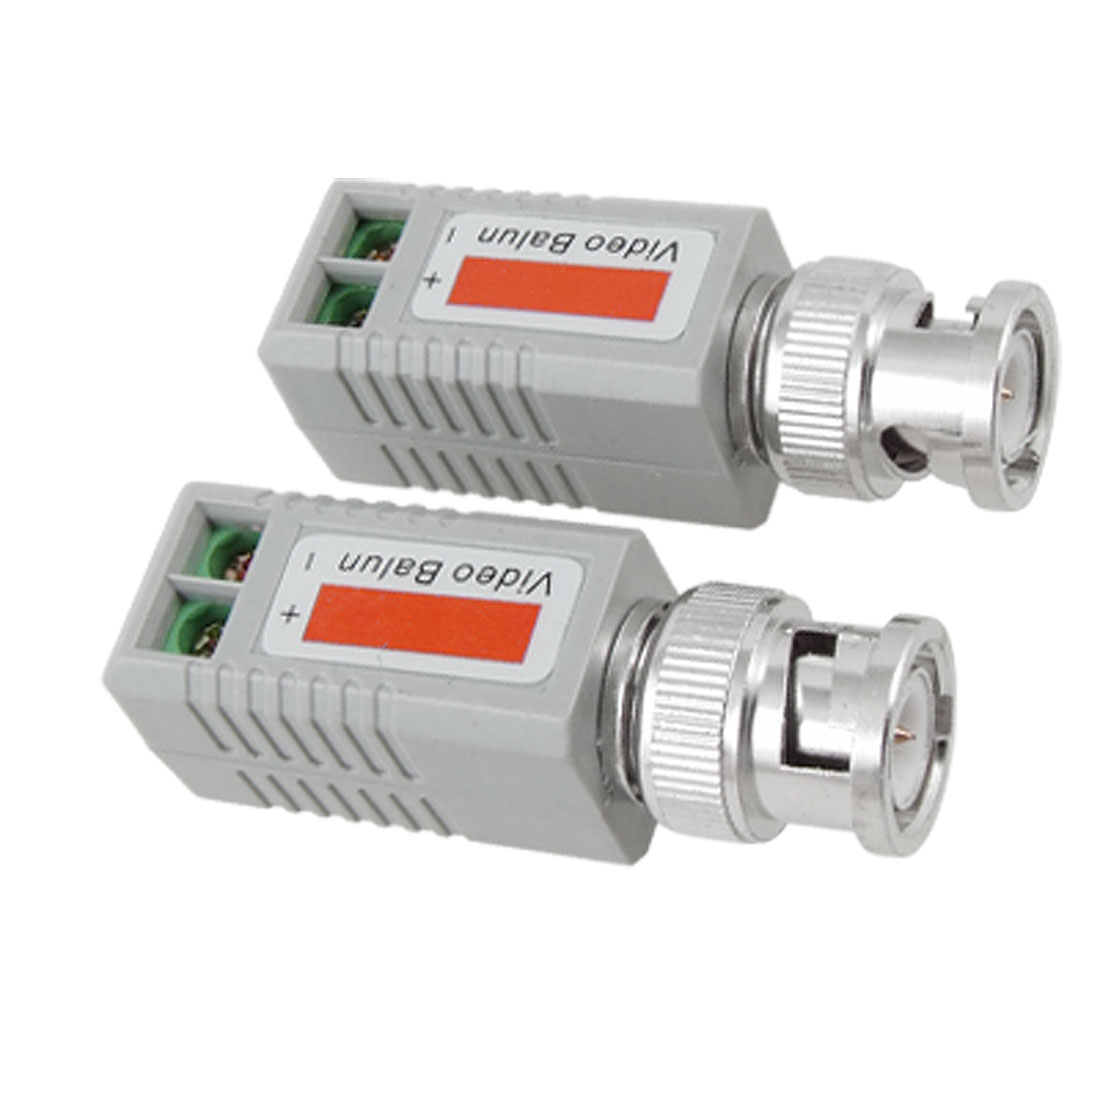 Coax CAT5 CCTV Security Camera Male BNC Passive Video Balun Transceiver 2 Pcs